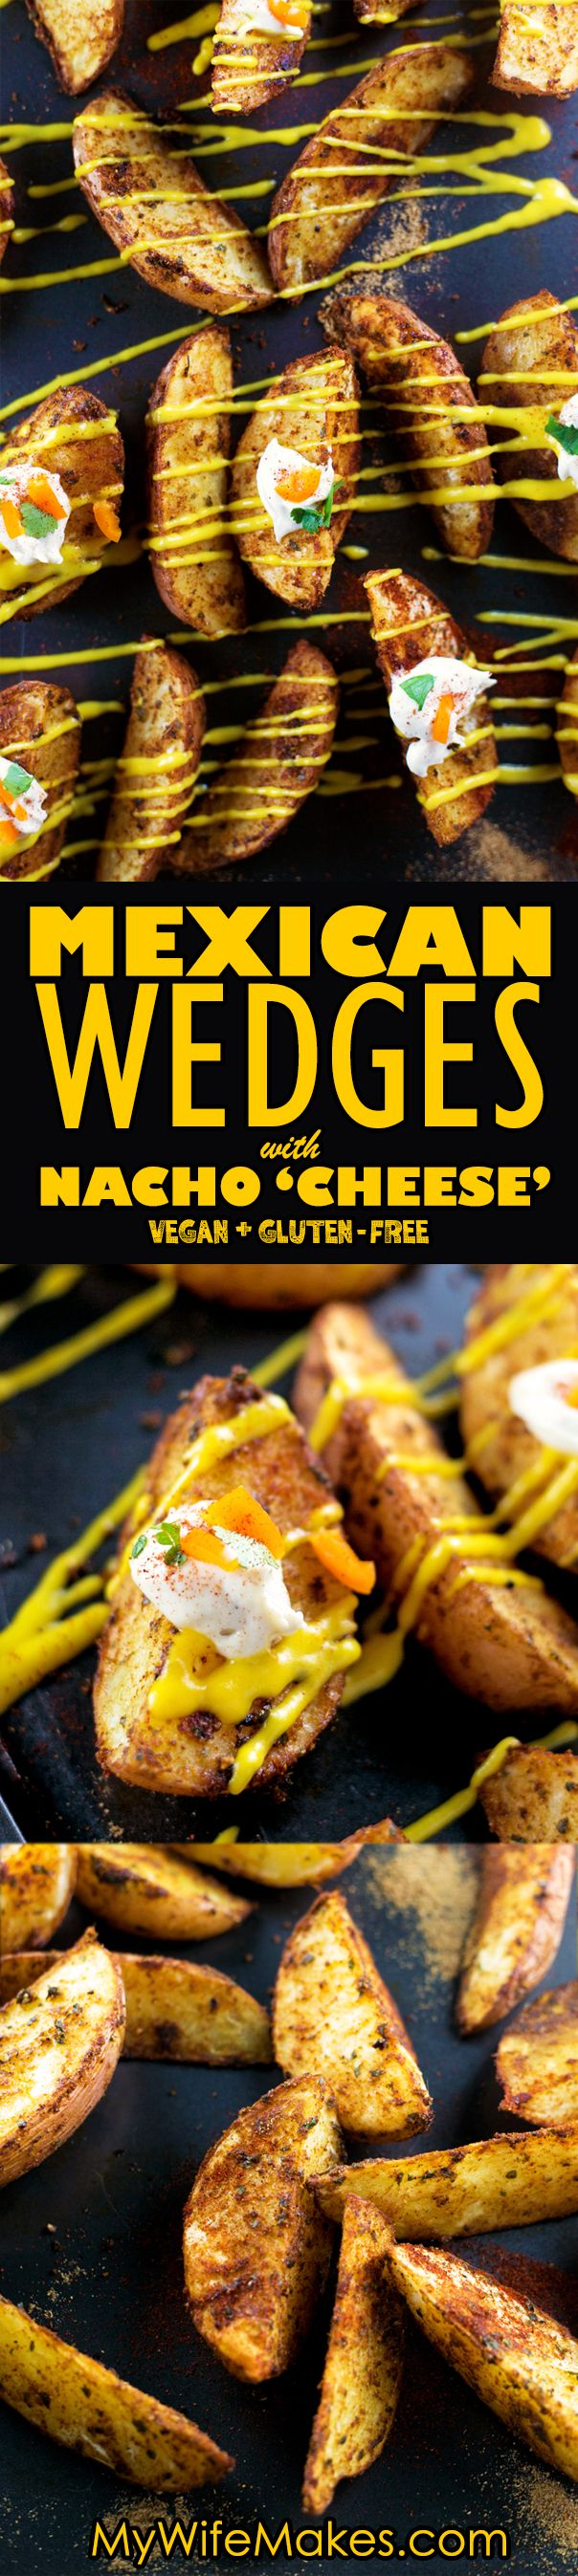 Spiced Mexican Potato Wedges with homemade Vegan Sour Cream and Nacho Cheese Sauce. Creamy, Cheesy, Spicy and Simple to make. #mexican #wedges #nachos #sourcream #cheese #vegan #vegetarian #recipe #food #potato